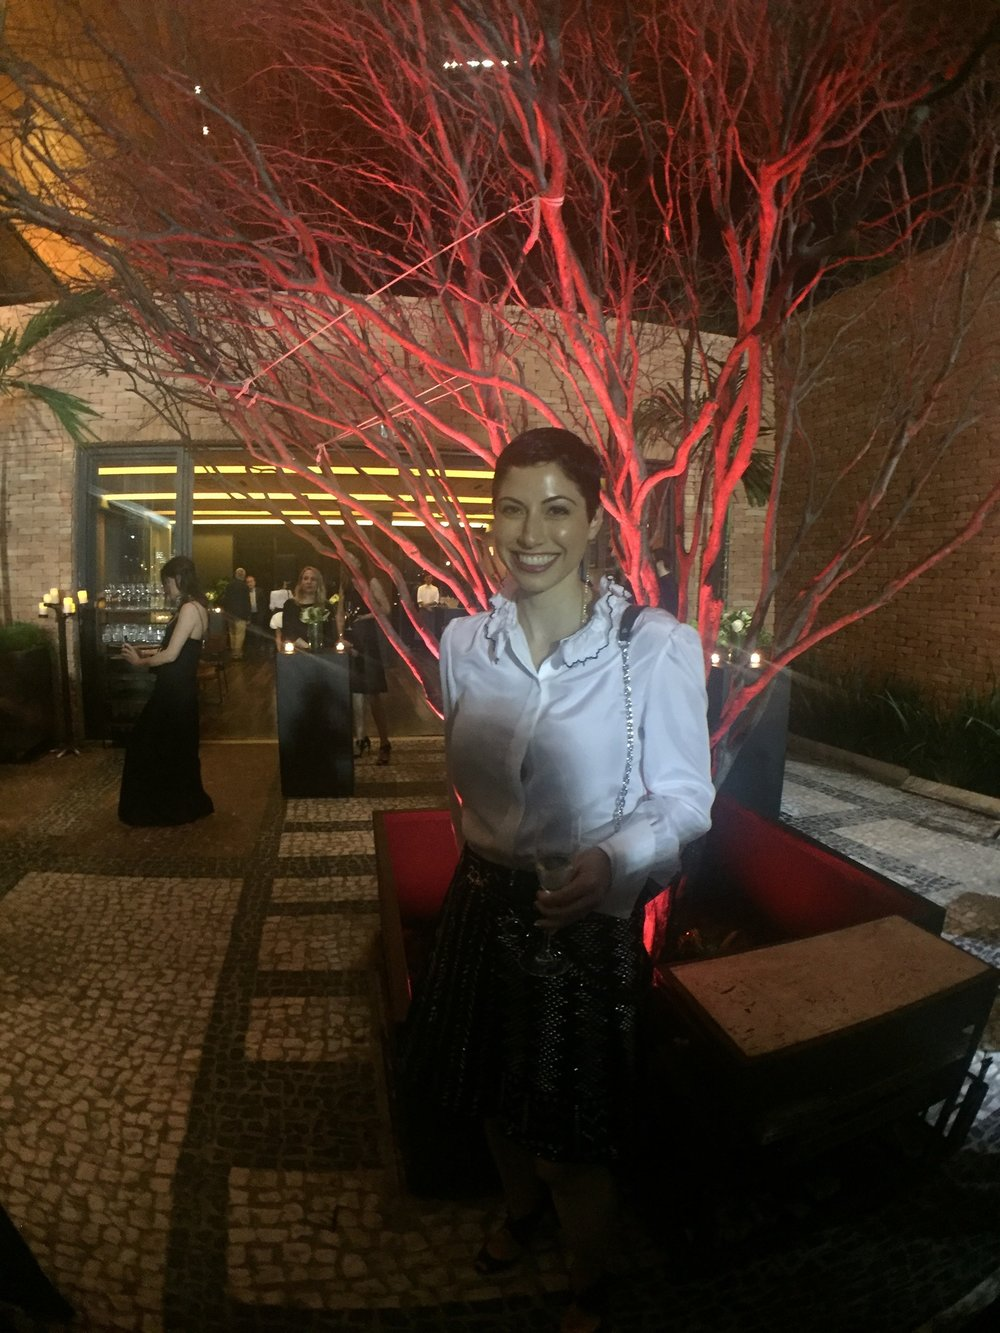 Louis Vuitton Cruise 2017 Rio de Janeiro - For dinner, we went to the Rubaiyat Rio which is located at the Jockey Club.